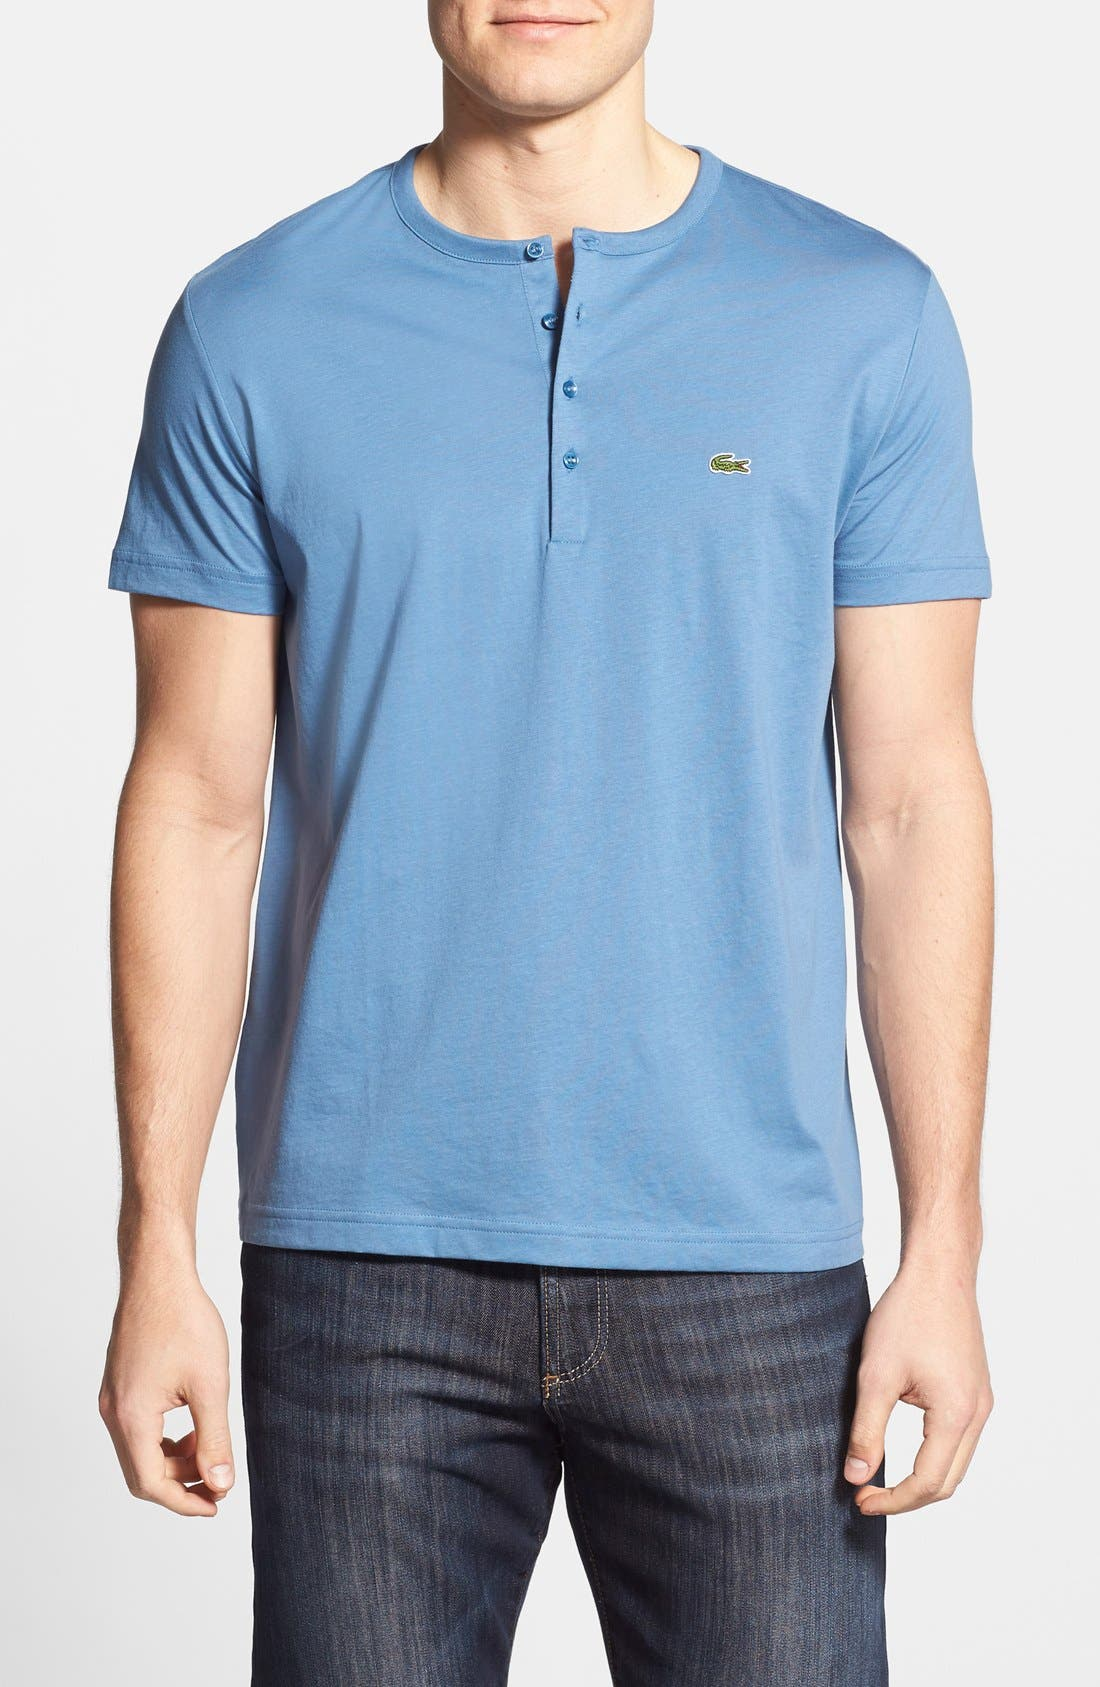 Main Image - Lacoste Short Sleeve Henley T-Shirt